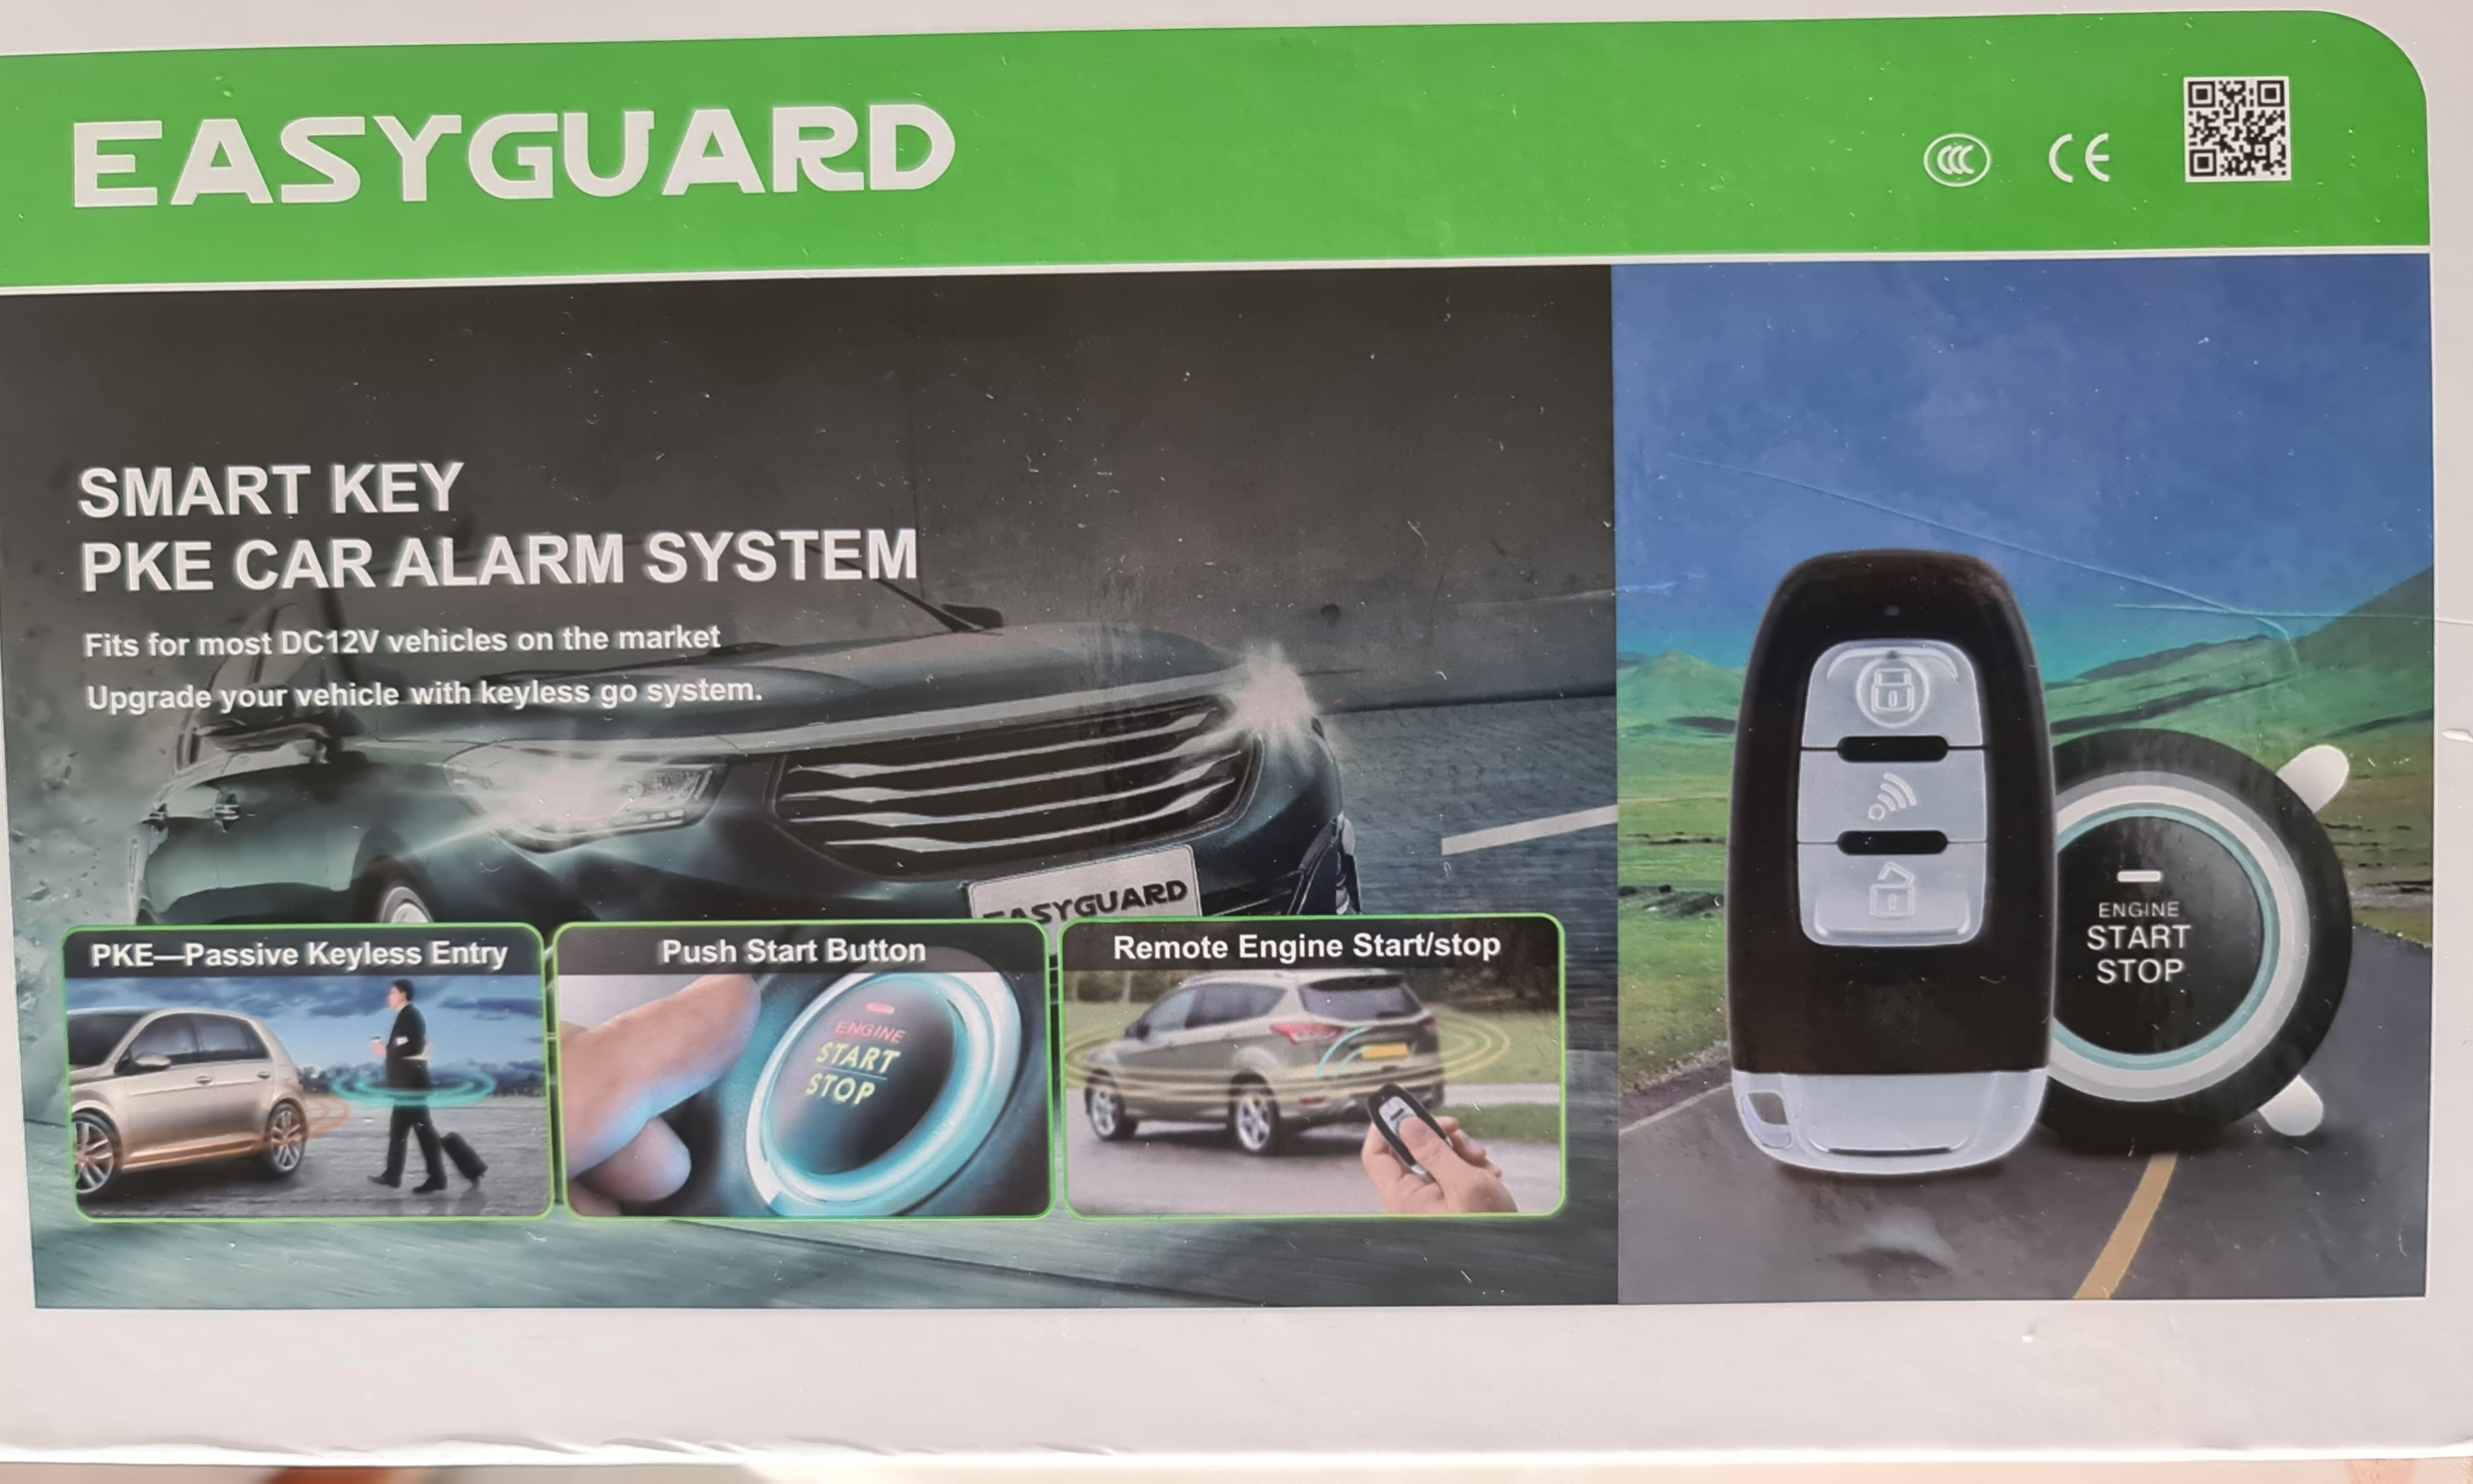 Easyguard Car Alarm System With Pke Passive Keyless Entry